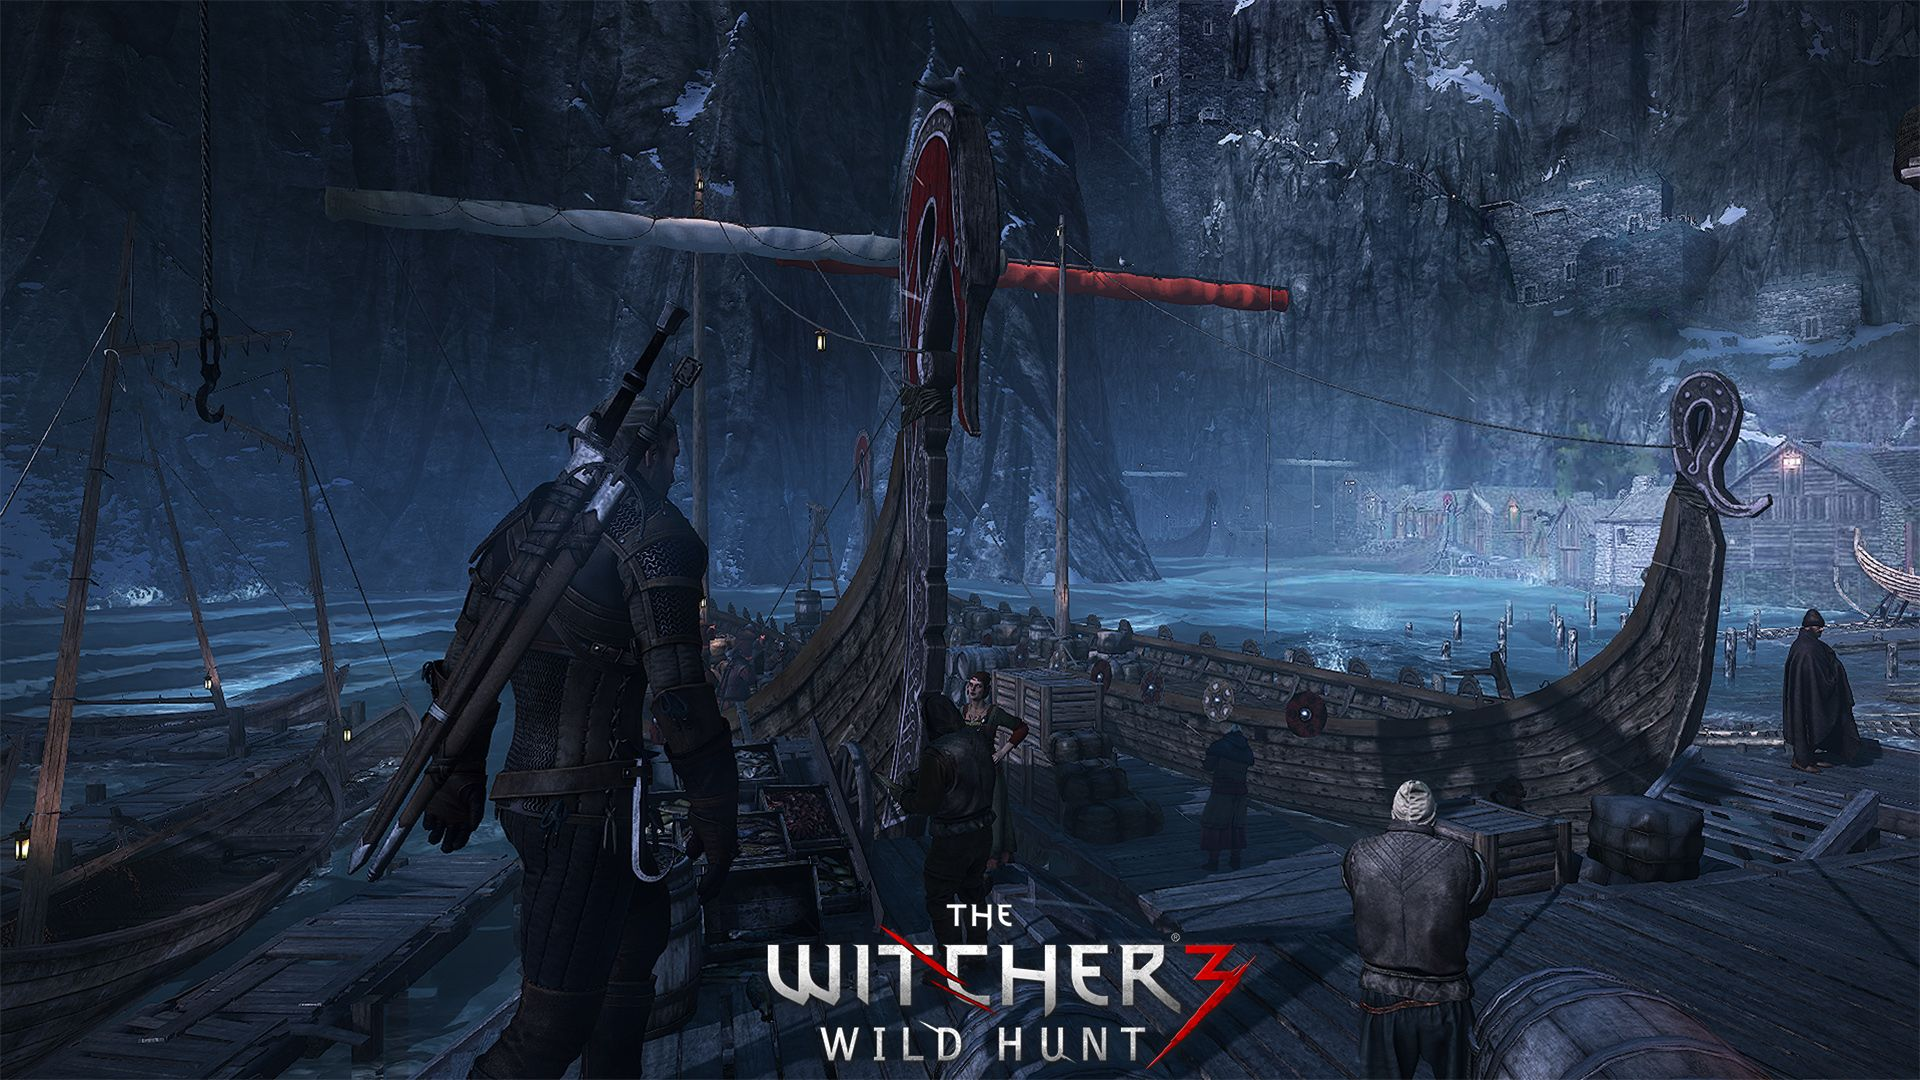 Wallpaper The Witcher 3 Drakkar Port Poster 1920x1080 The Witcher Wild Hunt The Witcher 3 The Witcher